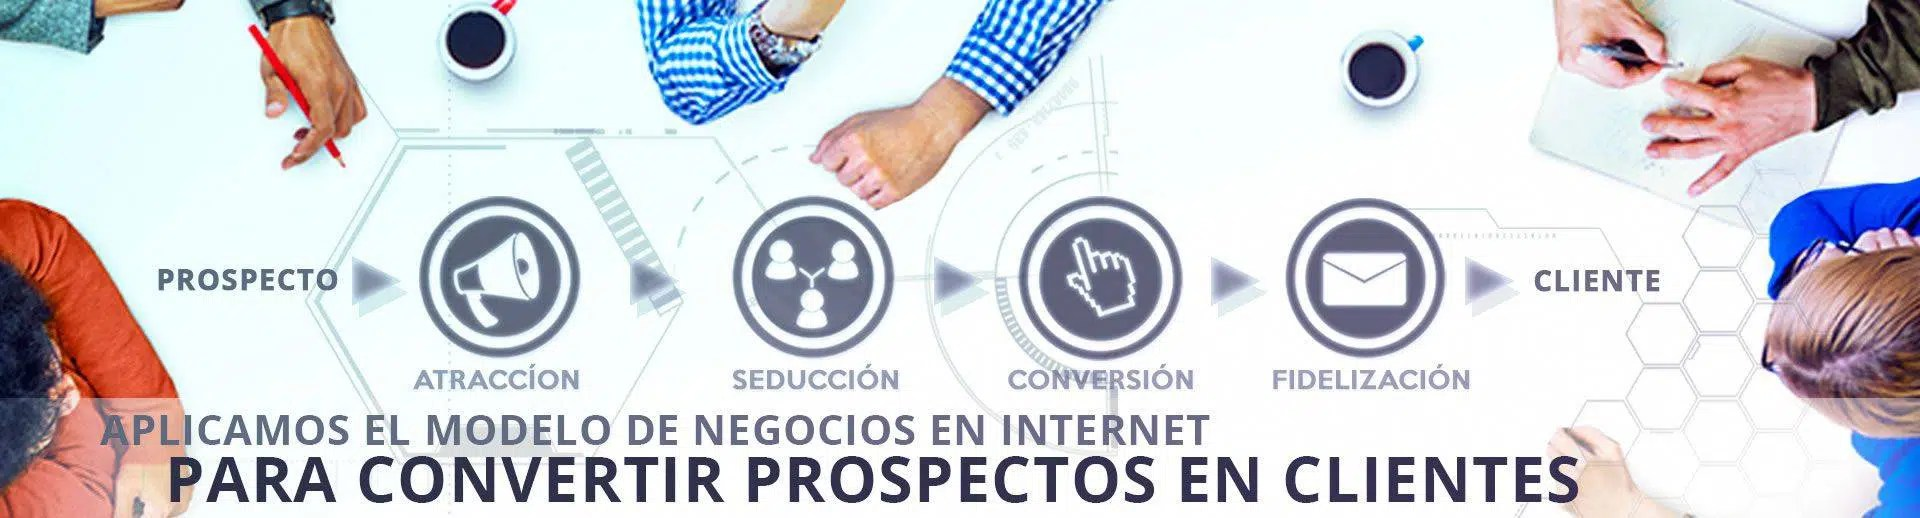 Empresa-de-marketing-digital